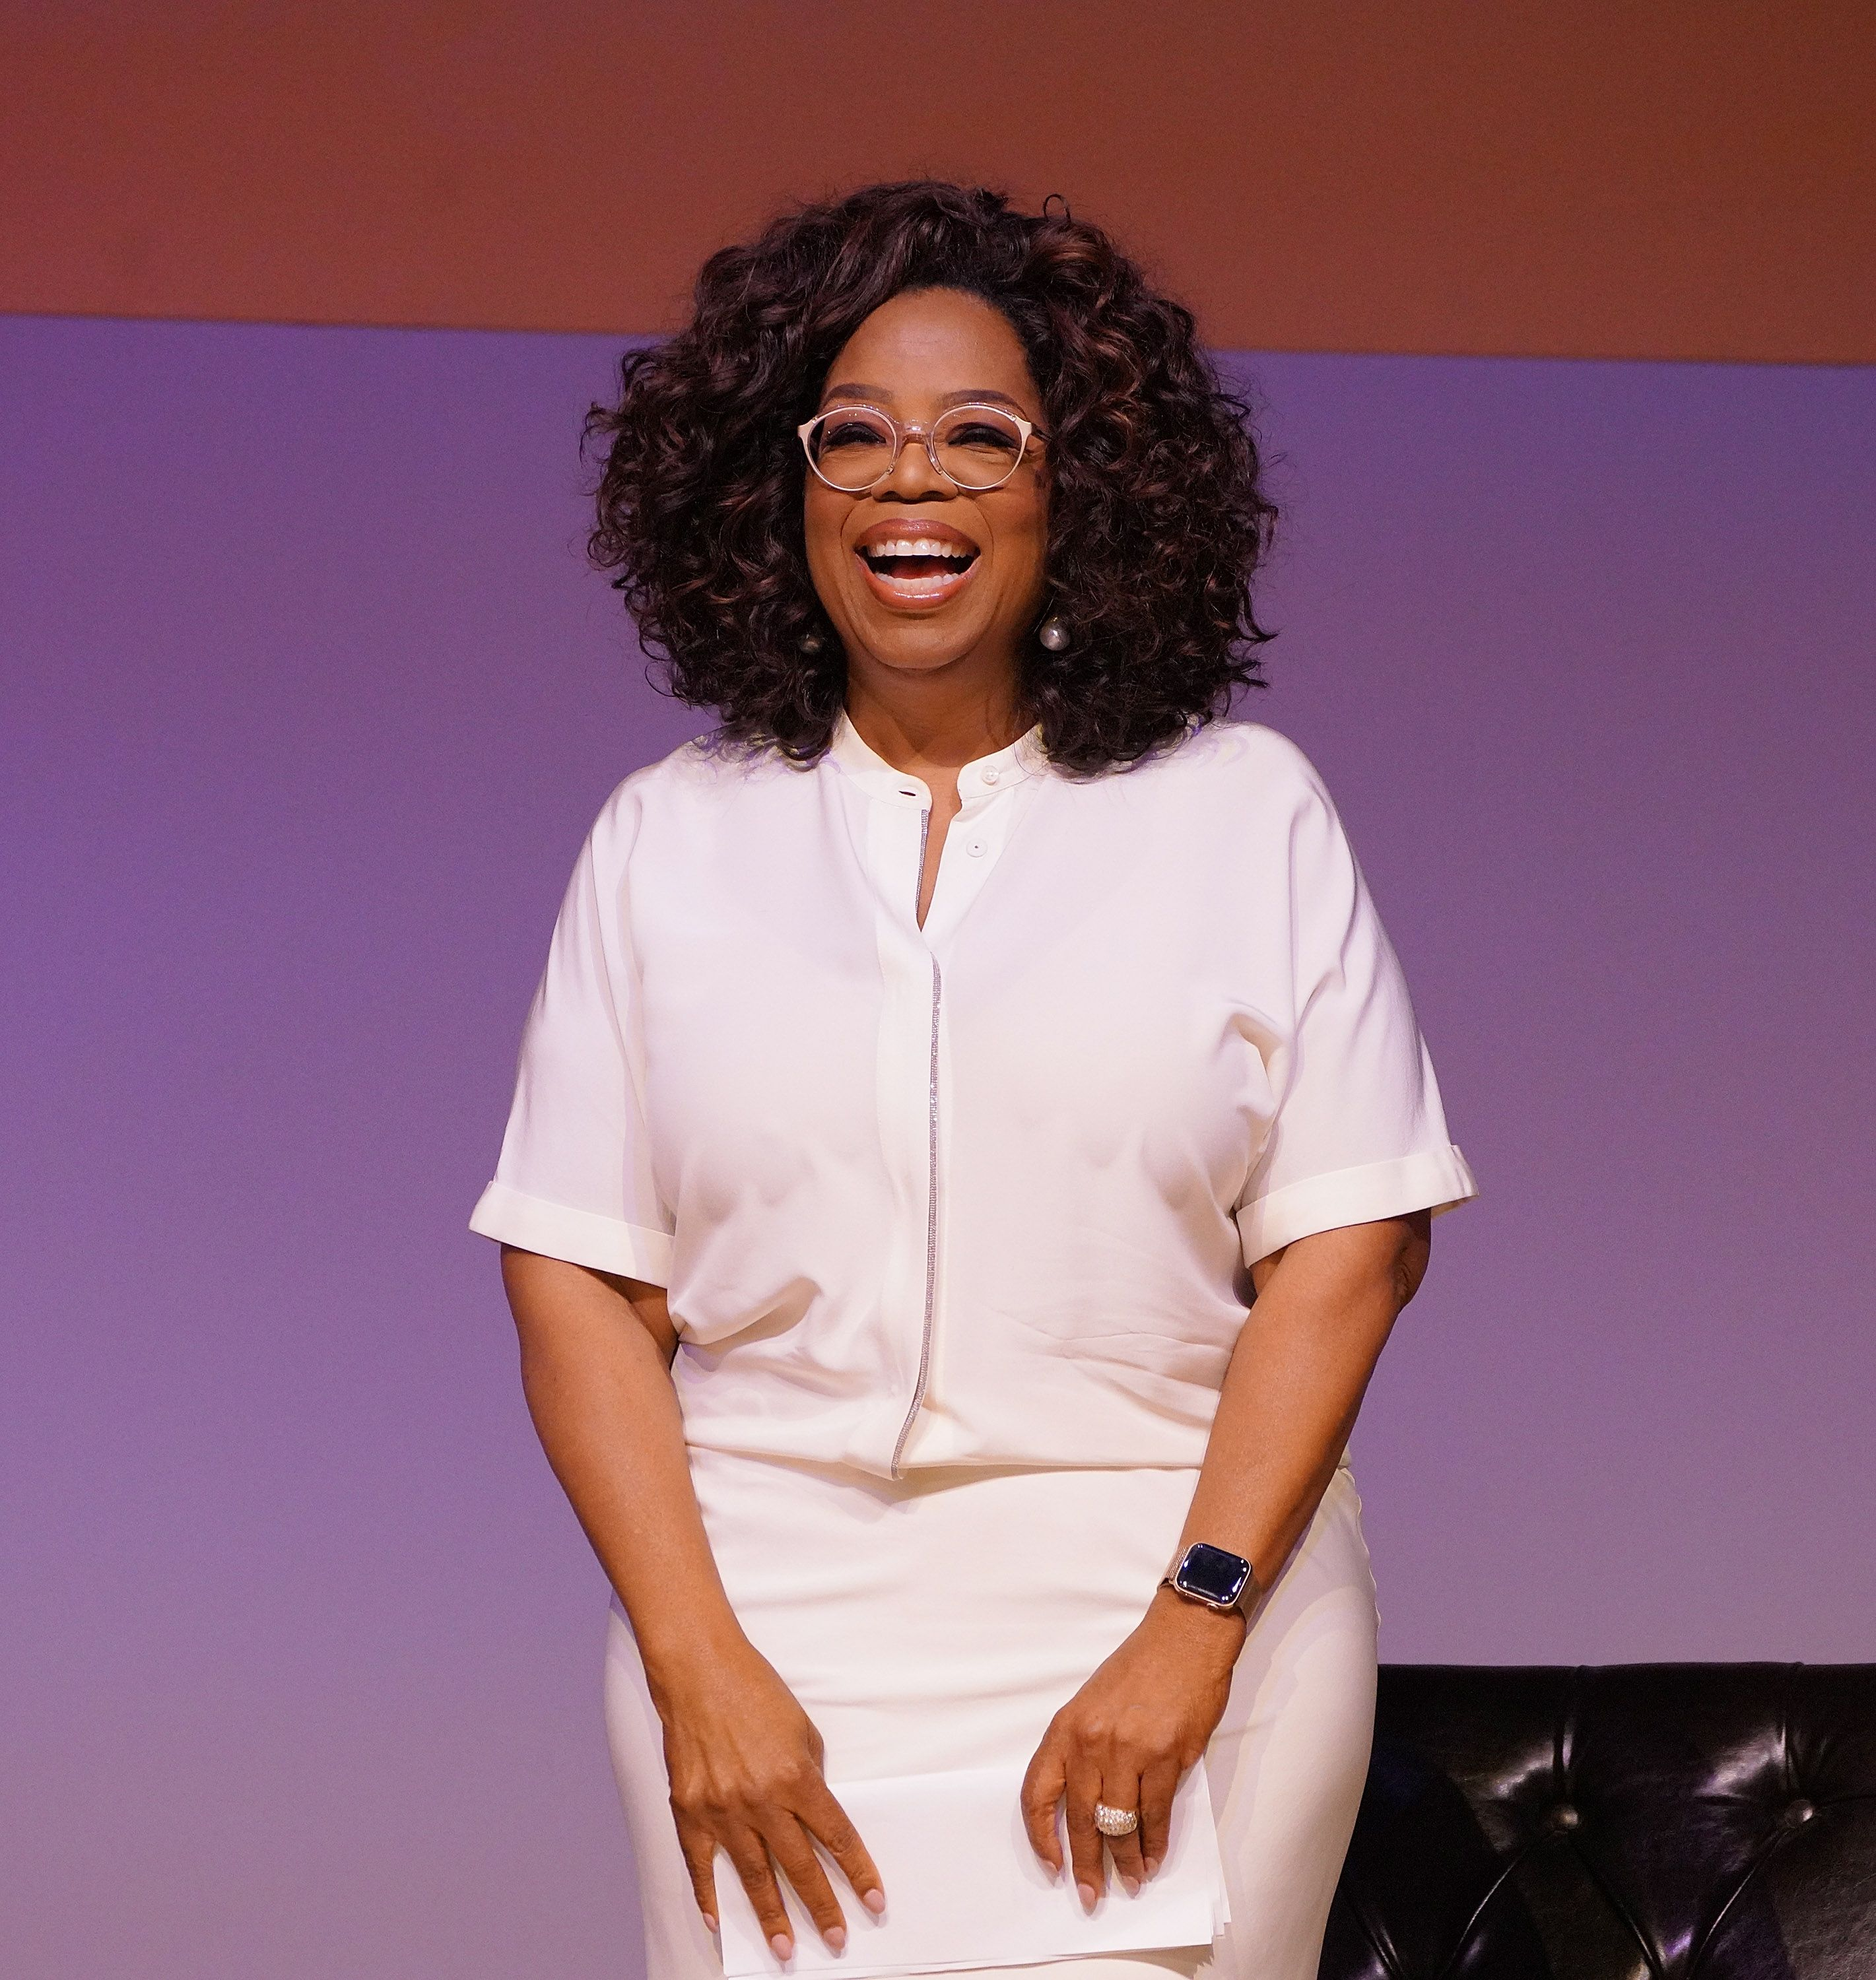 """At Apple Event, Oprah Announces Plans to Create the """"Biggest Book Club on the Planet"""""""